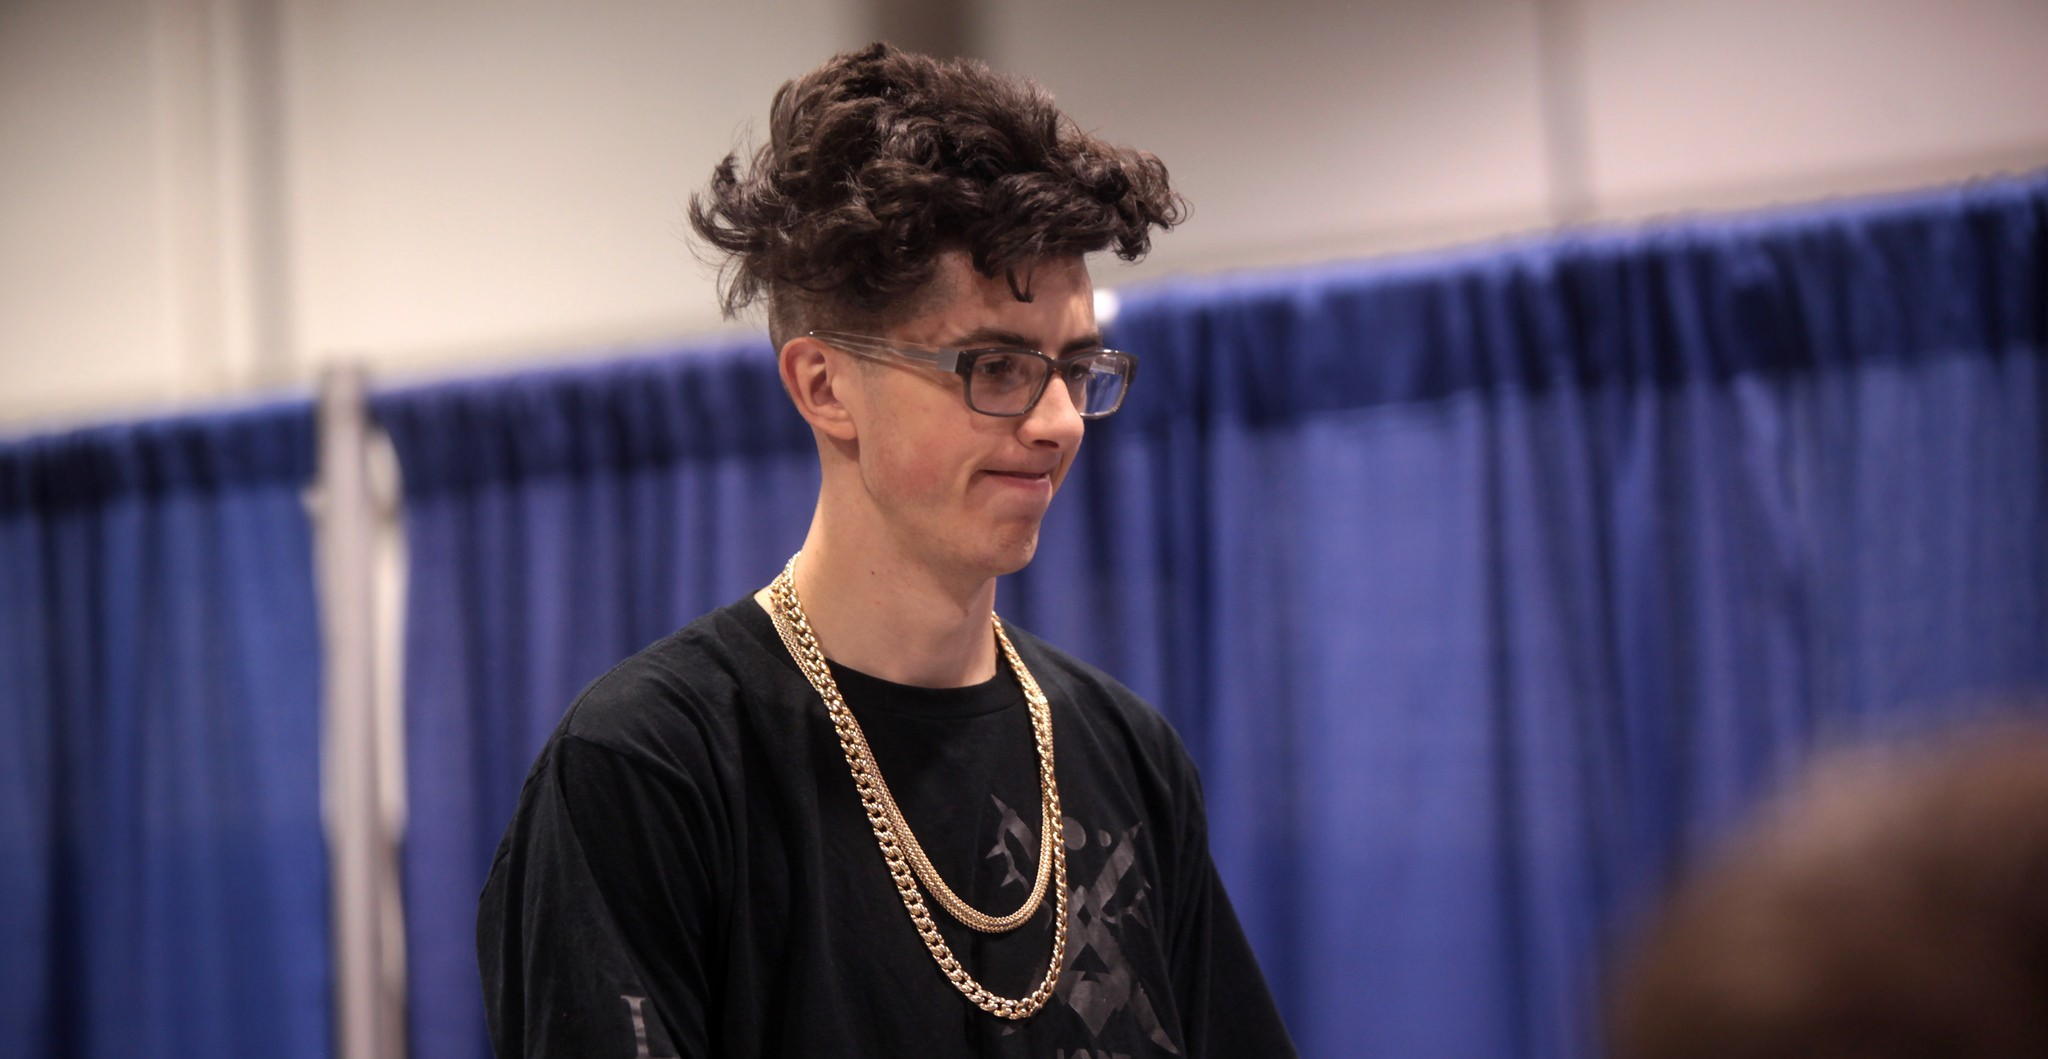 Sam Pepper 2